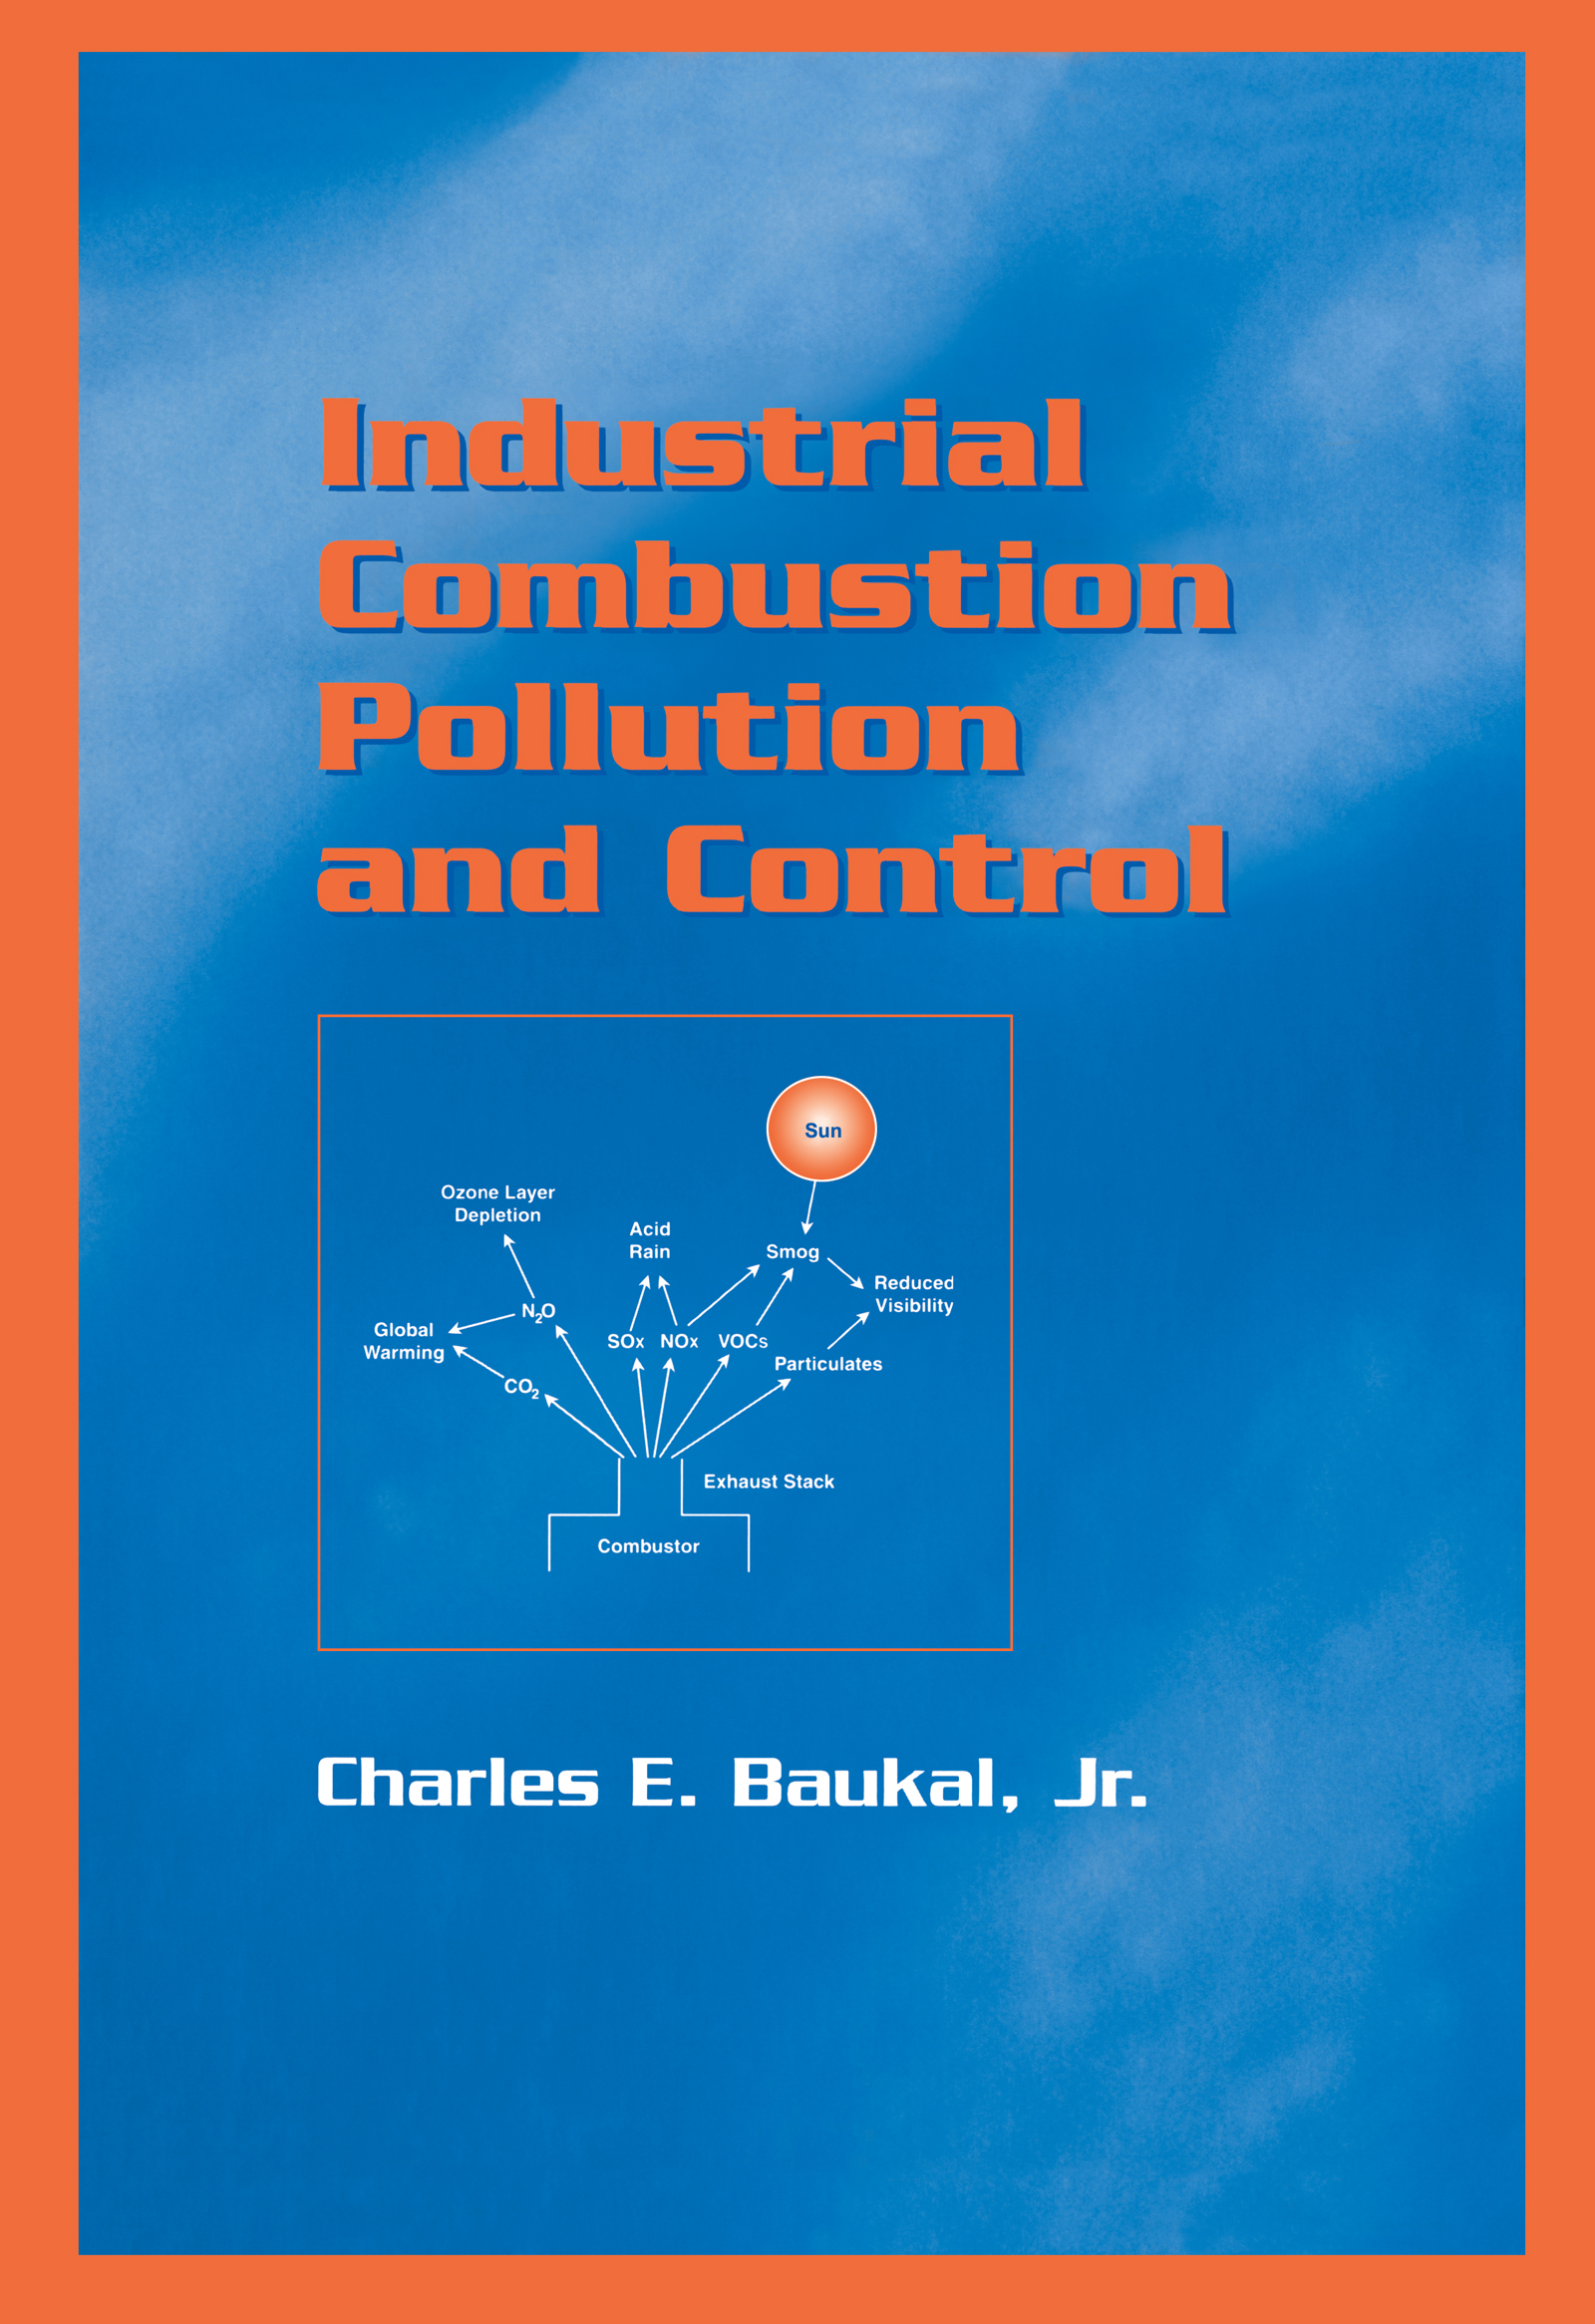 Industrial Combustion Pollution and Control book cover